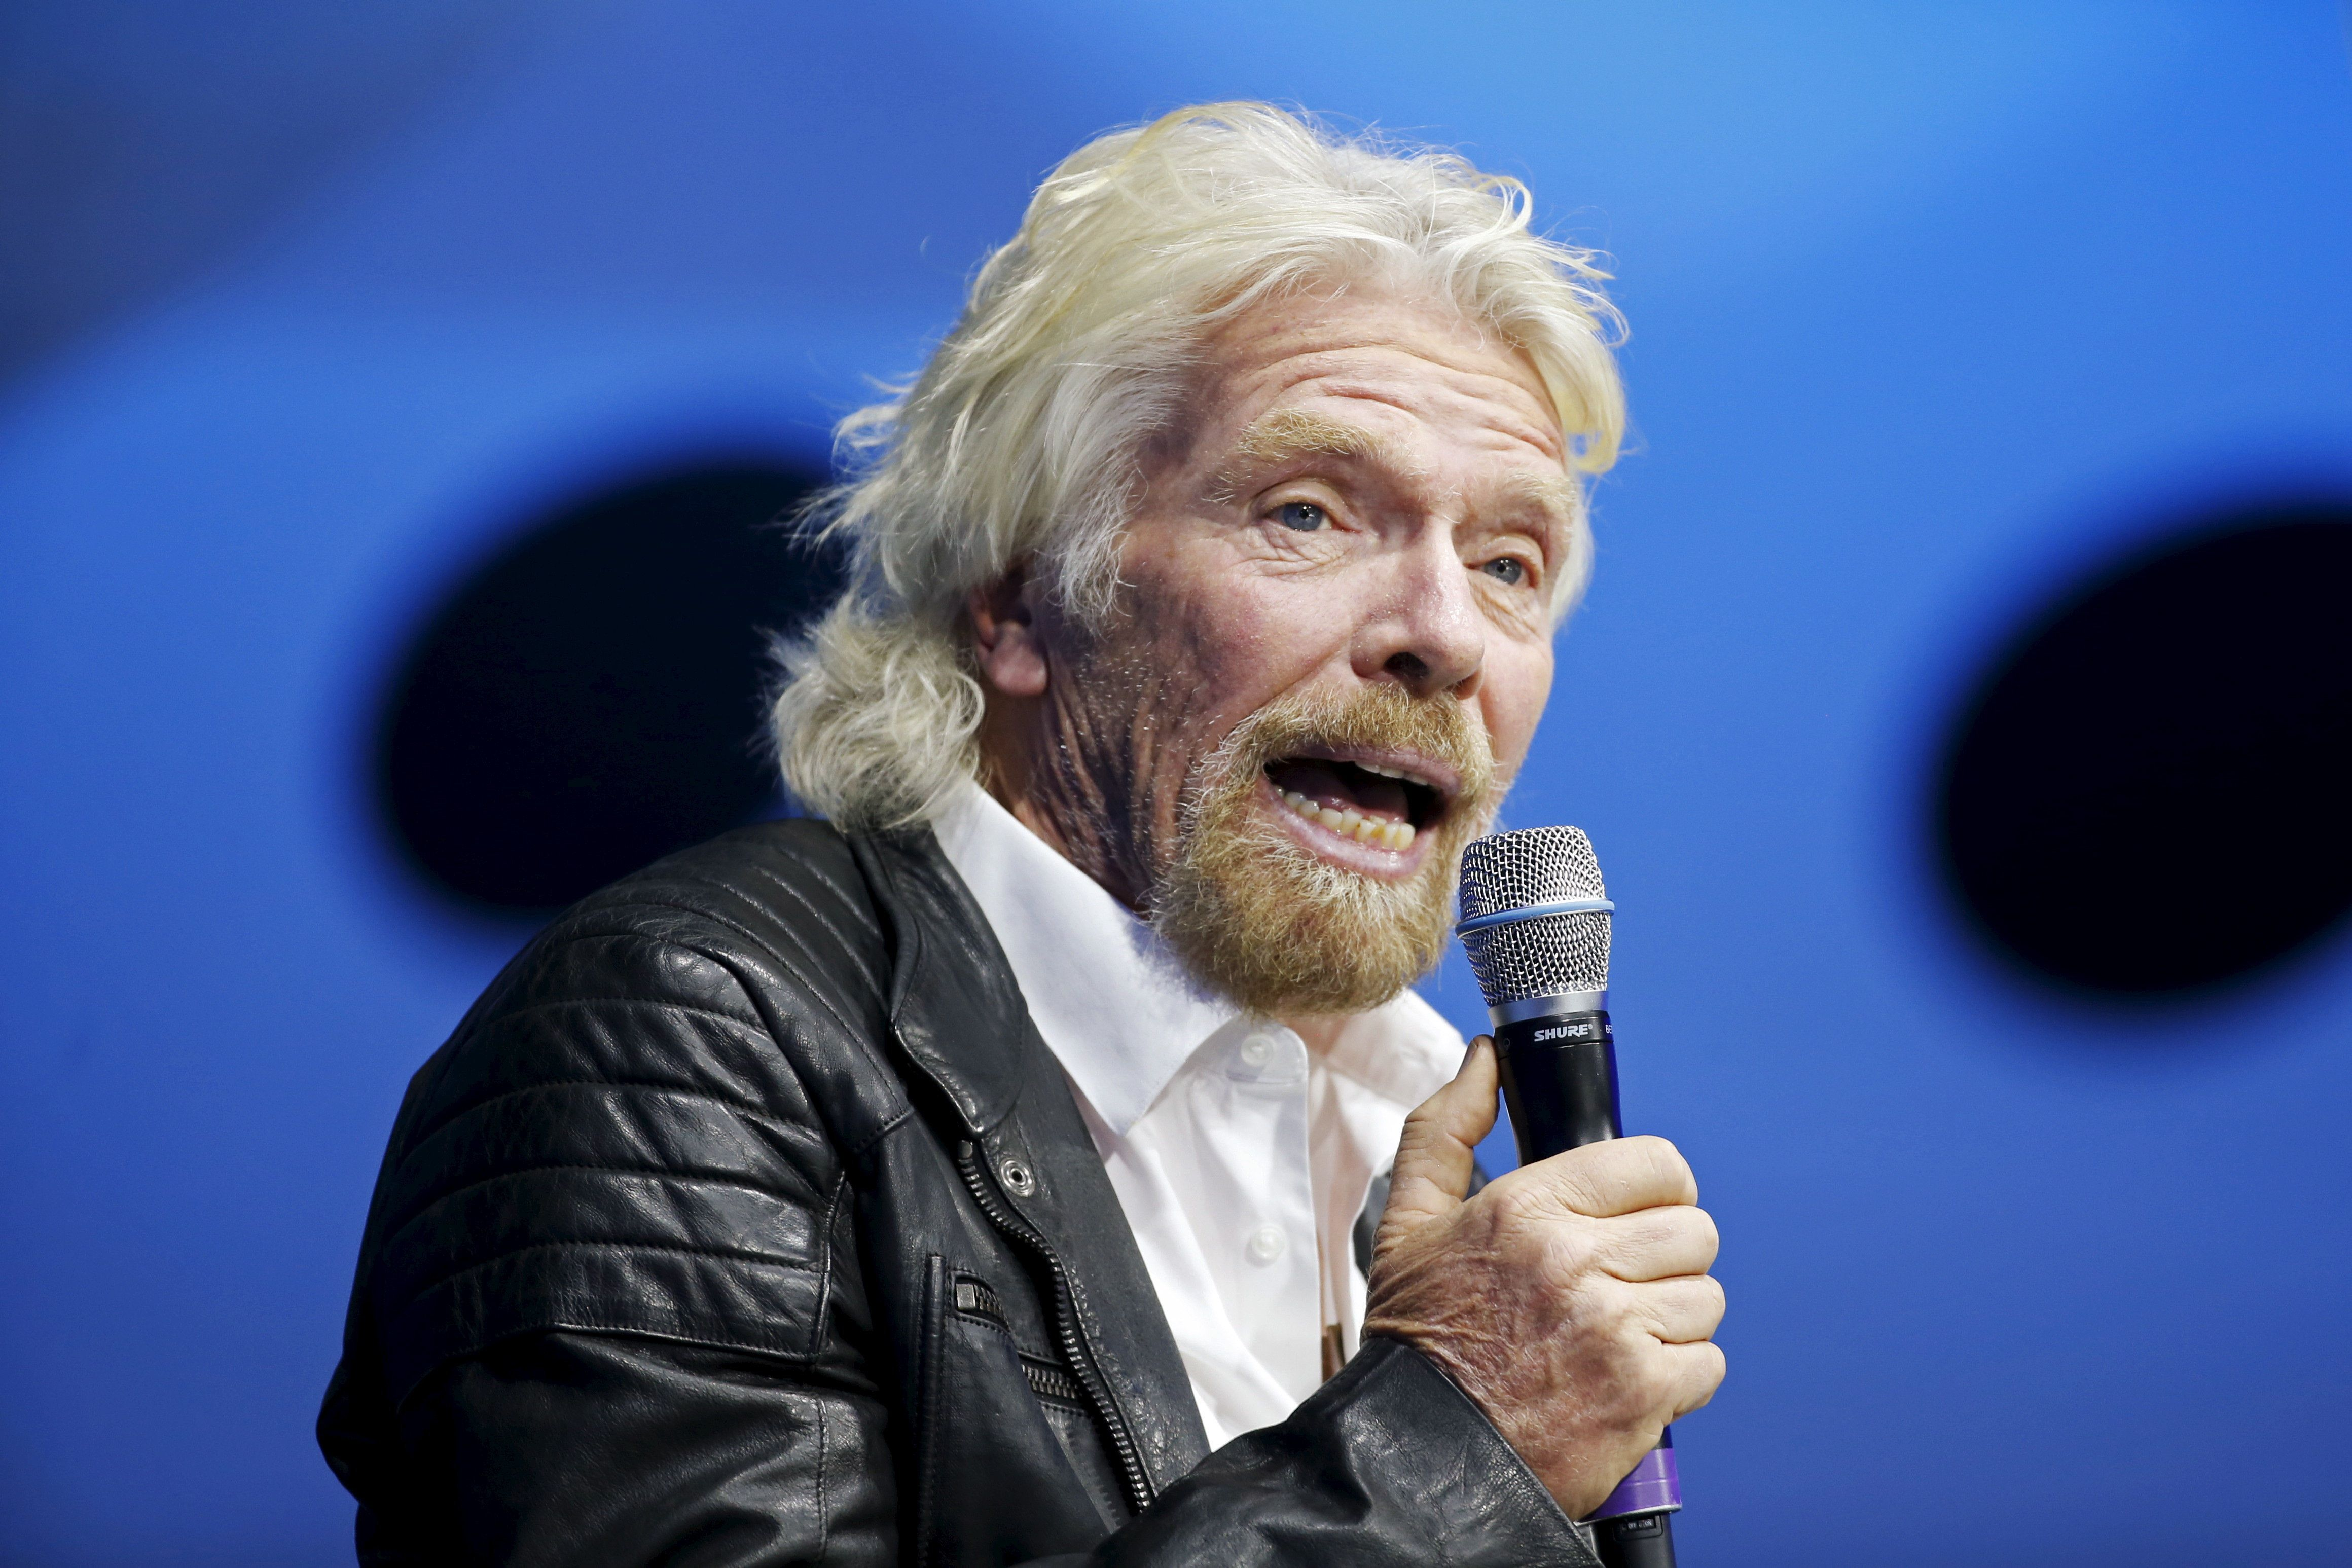 Richard Branson's project, Virgin Hyperloop One, seeks to decrease travel time using vacuum-based underground